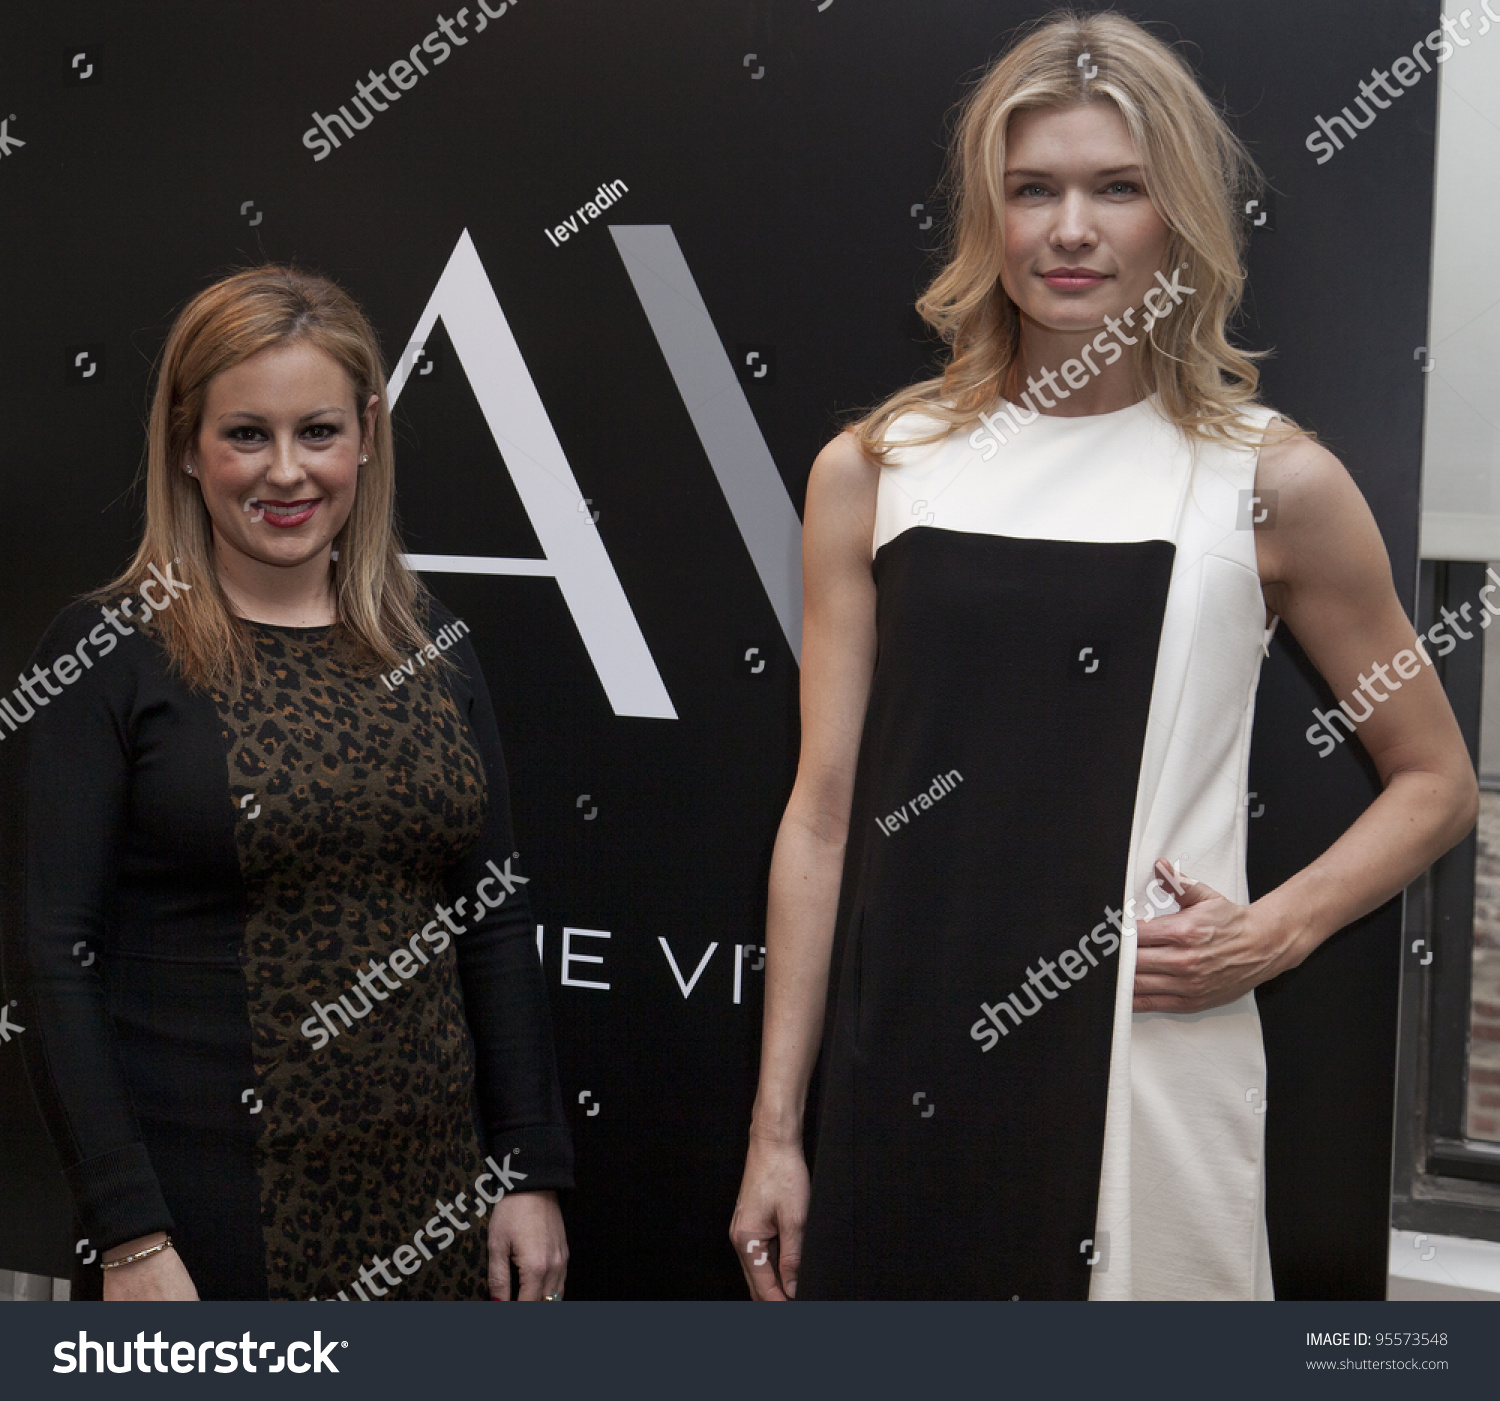 manhattan designers mobel NEW YORK - FEBRUARY 16: Designer Alicia Golitzin u0026 model for Adrienne  Vittadini collection by Alicia Golitzin at Adrienne Vittadini showroom in  Manhattan on ...